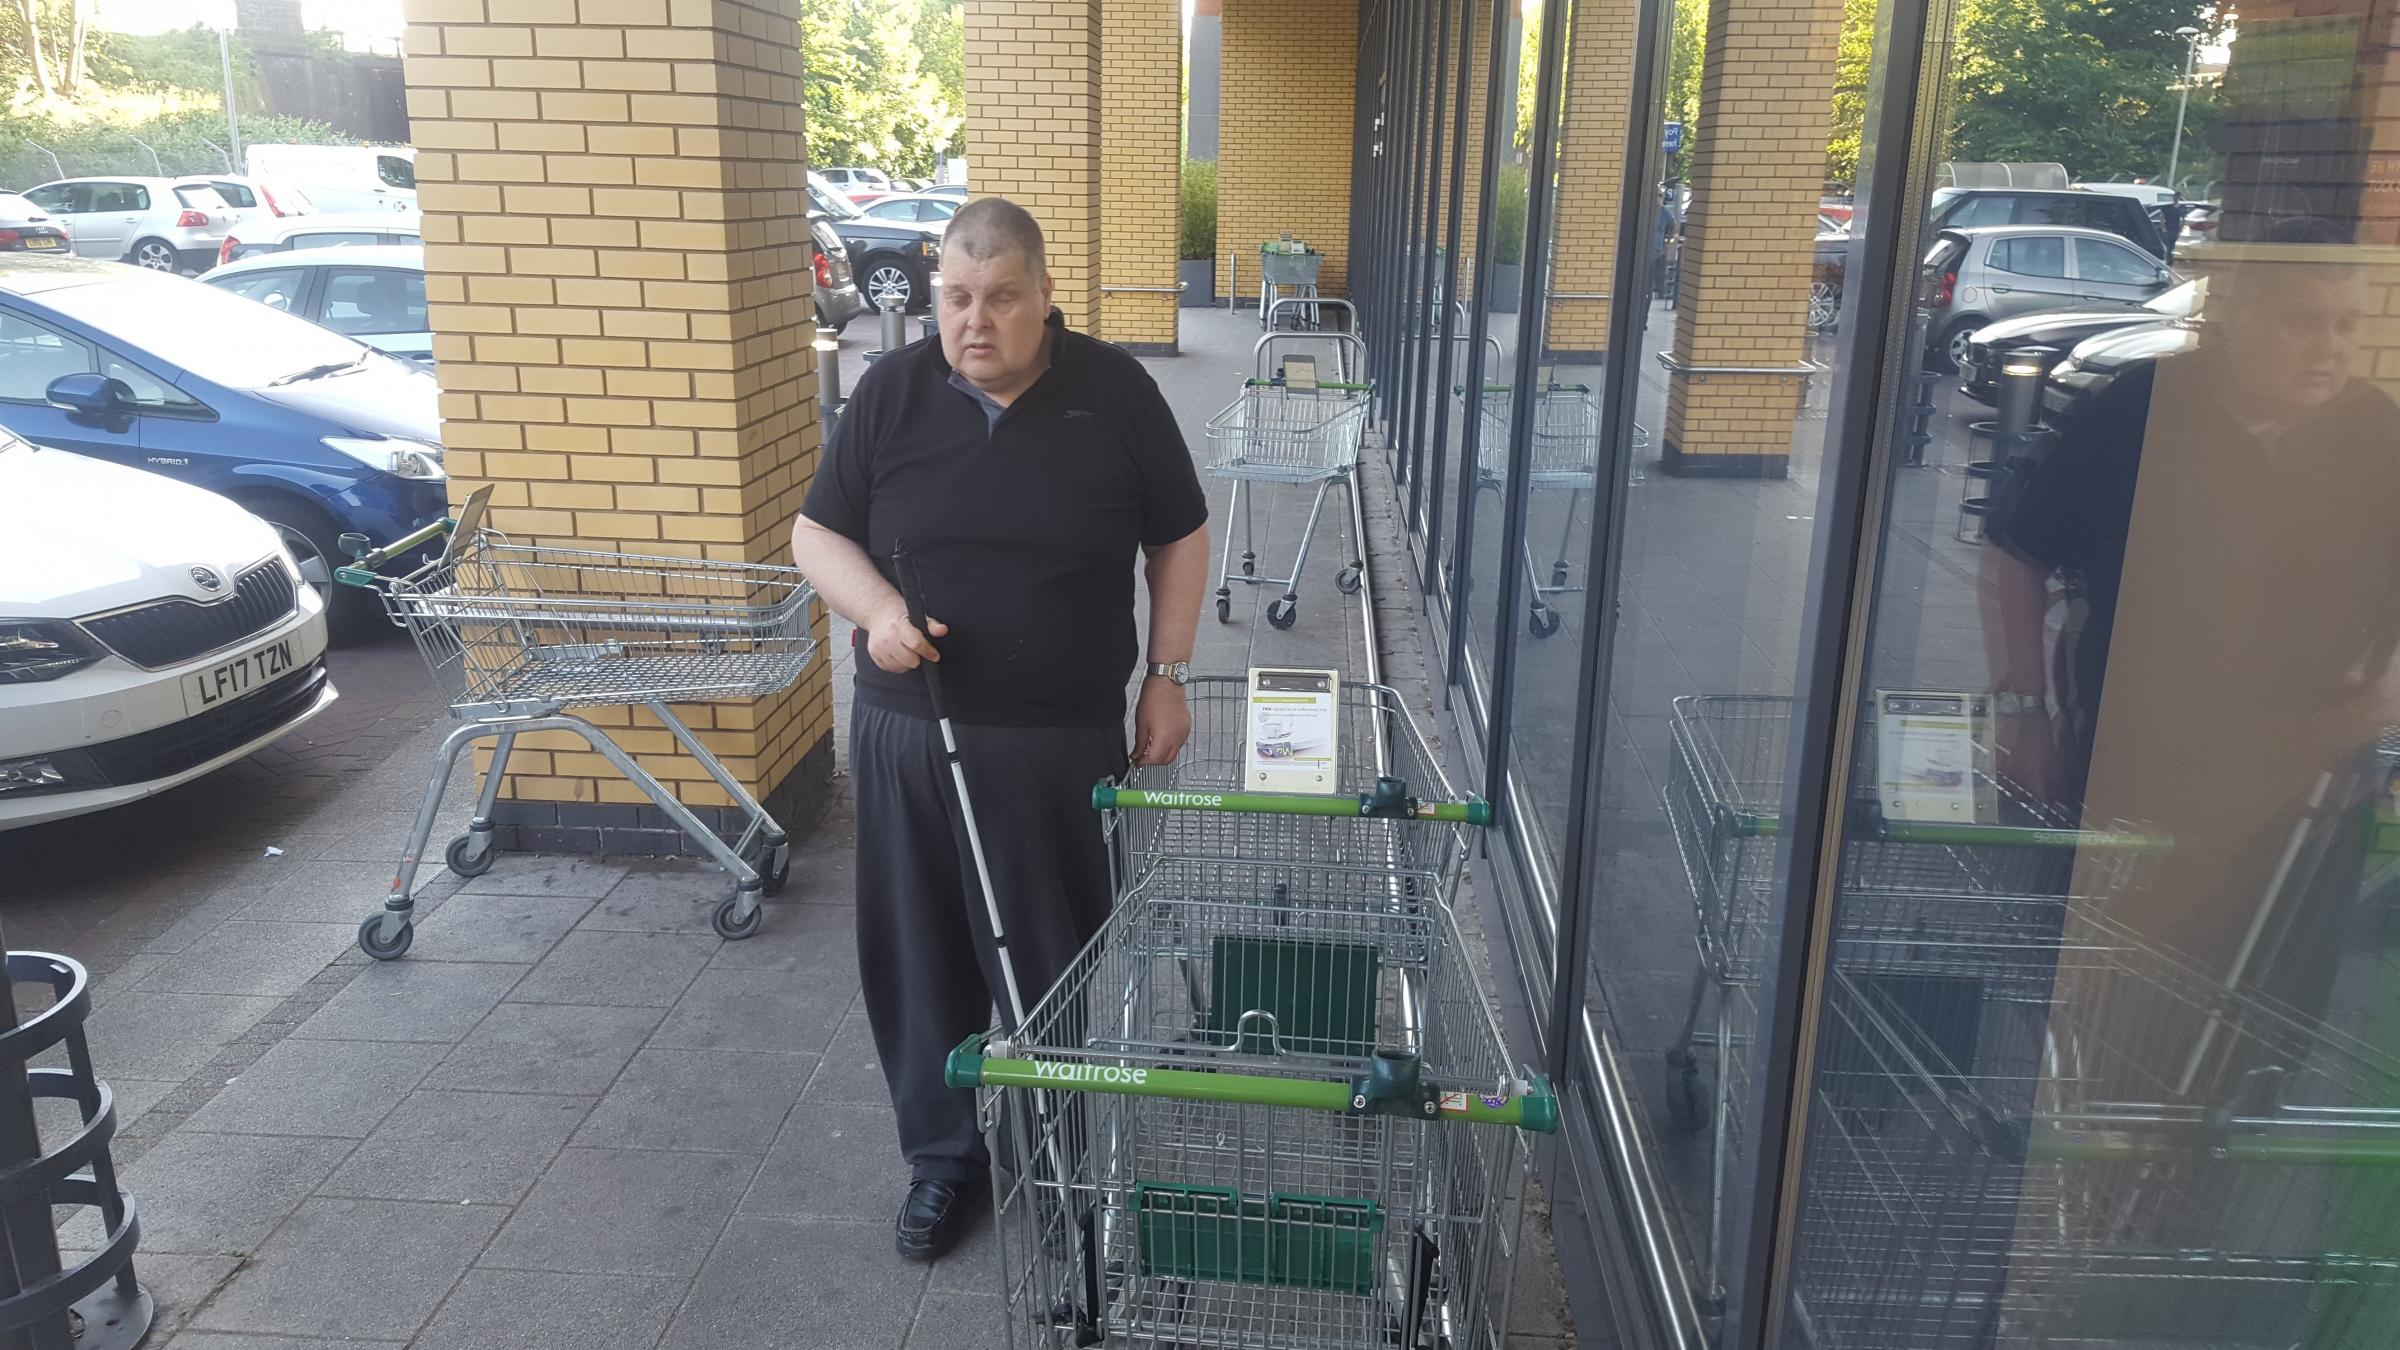 Wayne Busbridge wants something done about the poor trolley situation at Raynes Park Waitrose